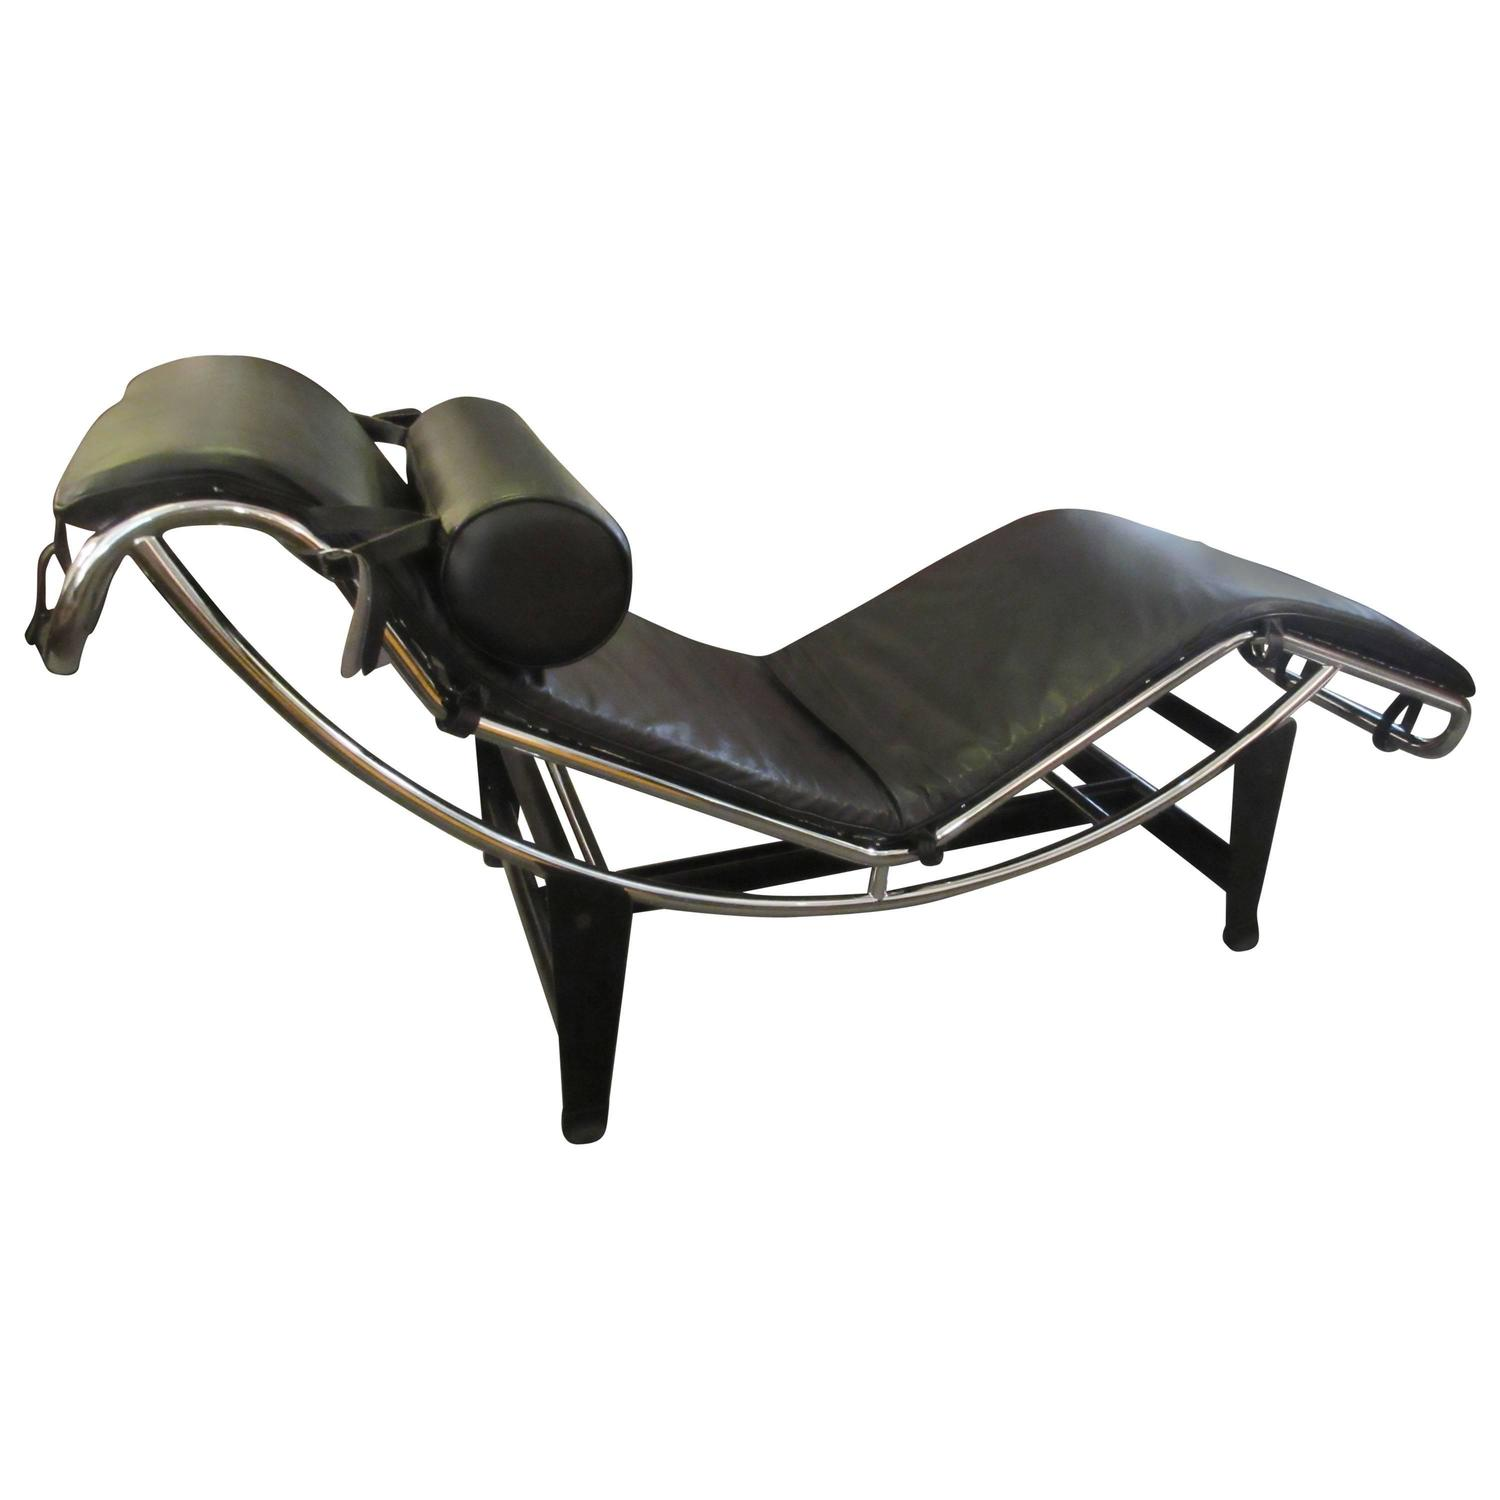 Le corbusier lc4 chrome and leather chaise longue at 1stdibs for Chaise longue pony lc4 le corbusier